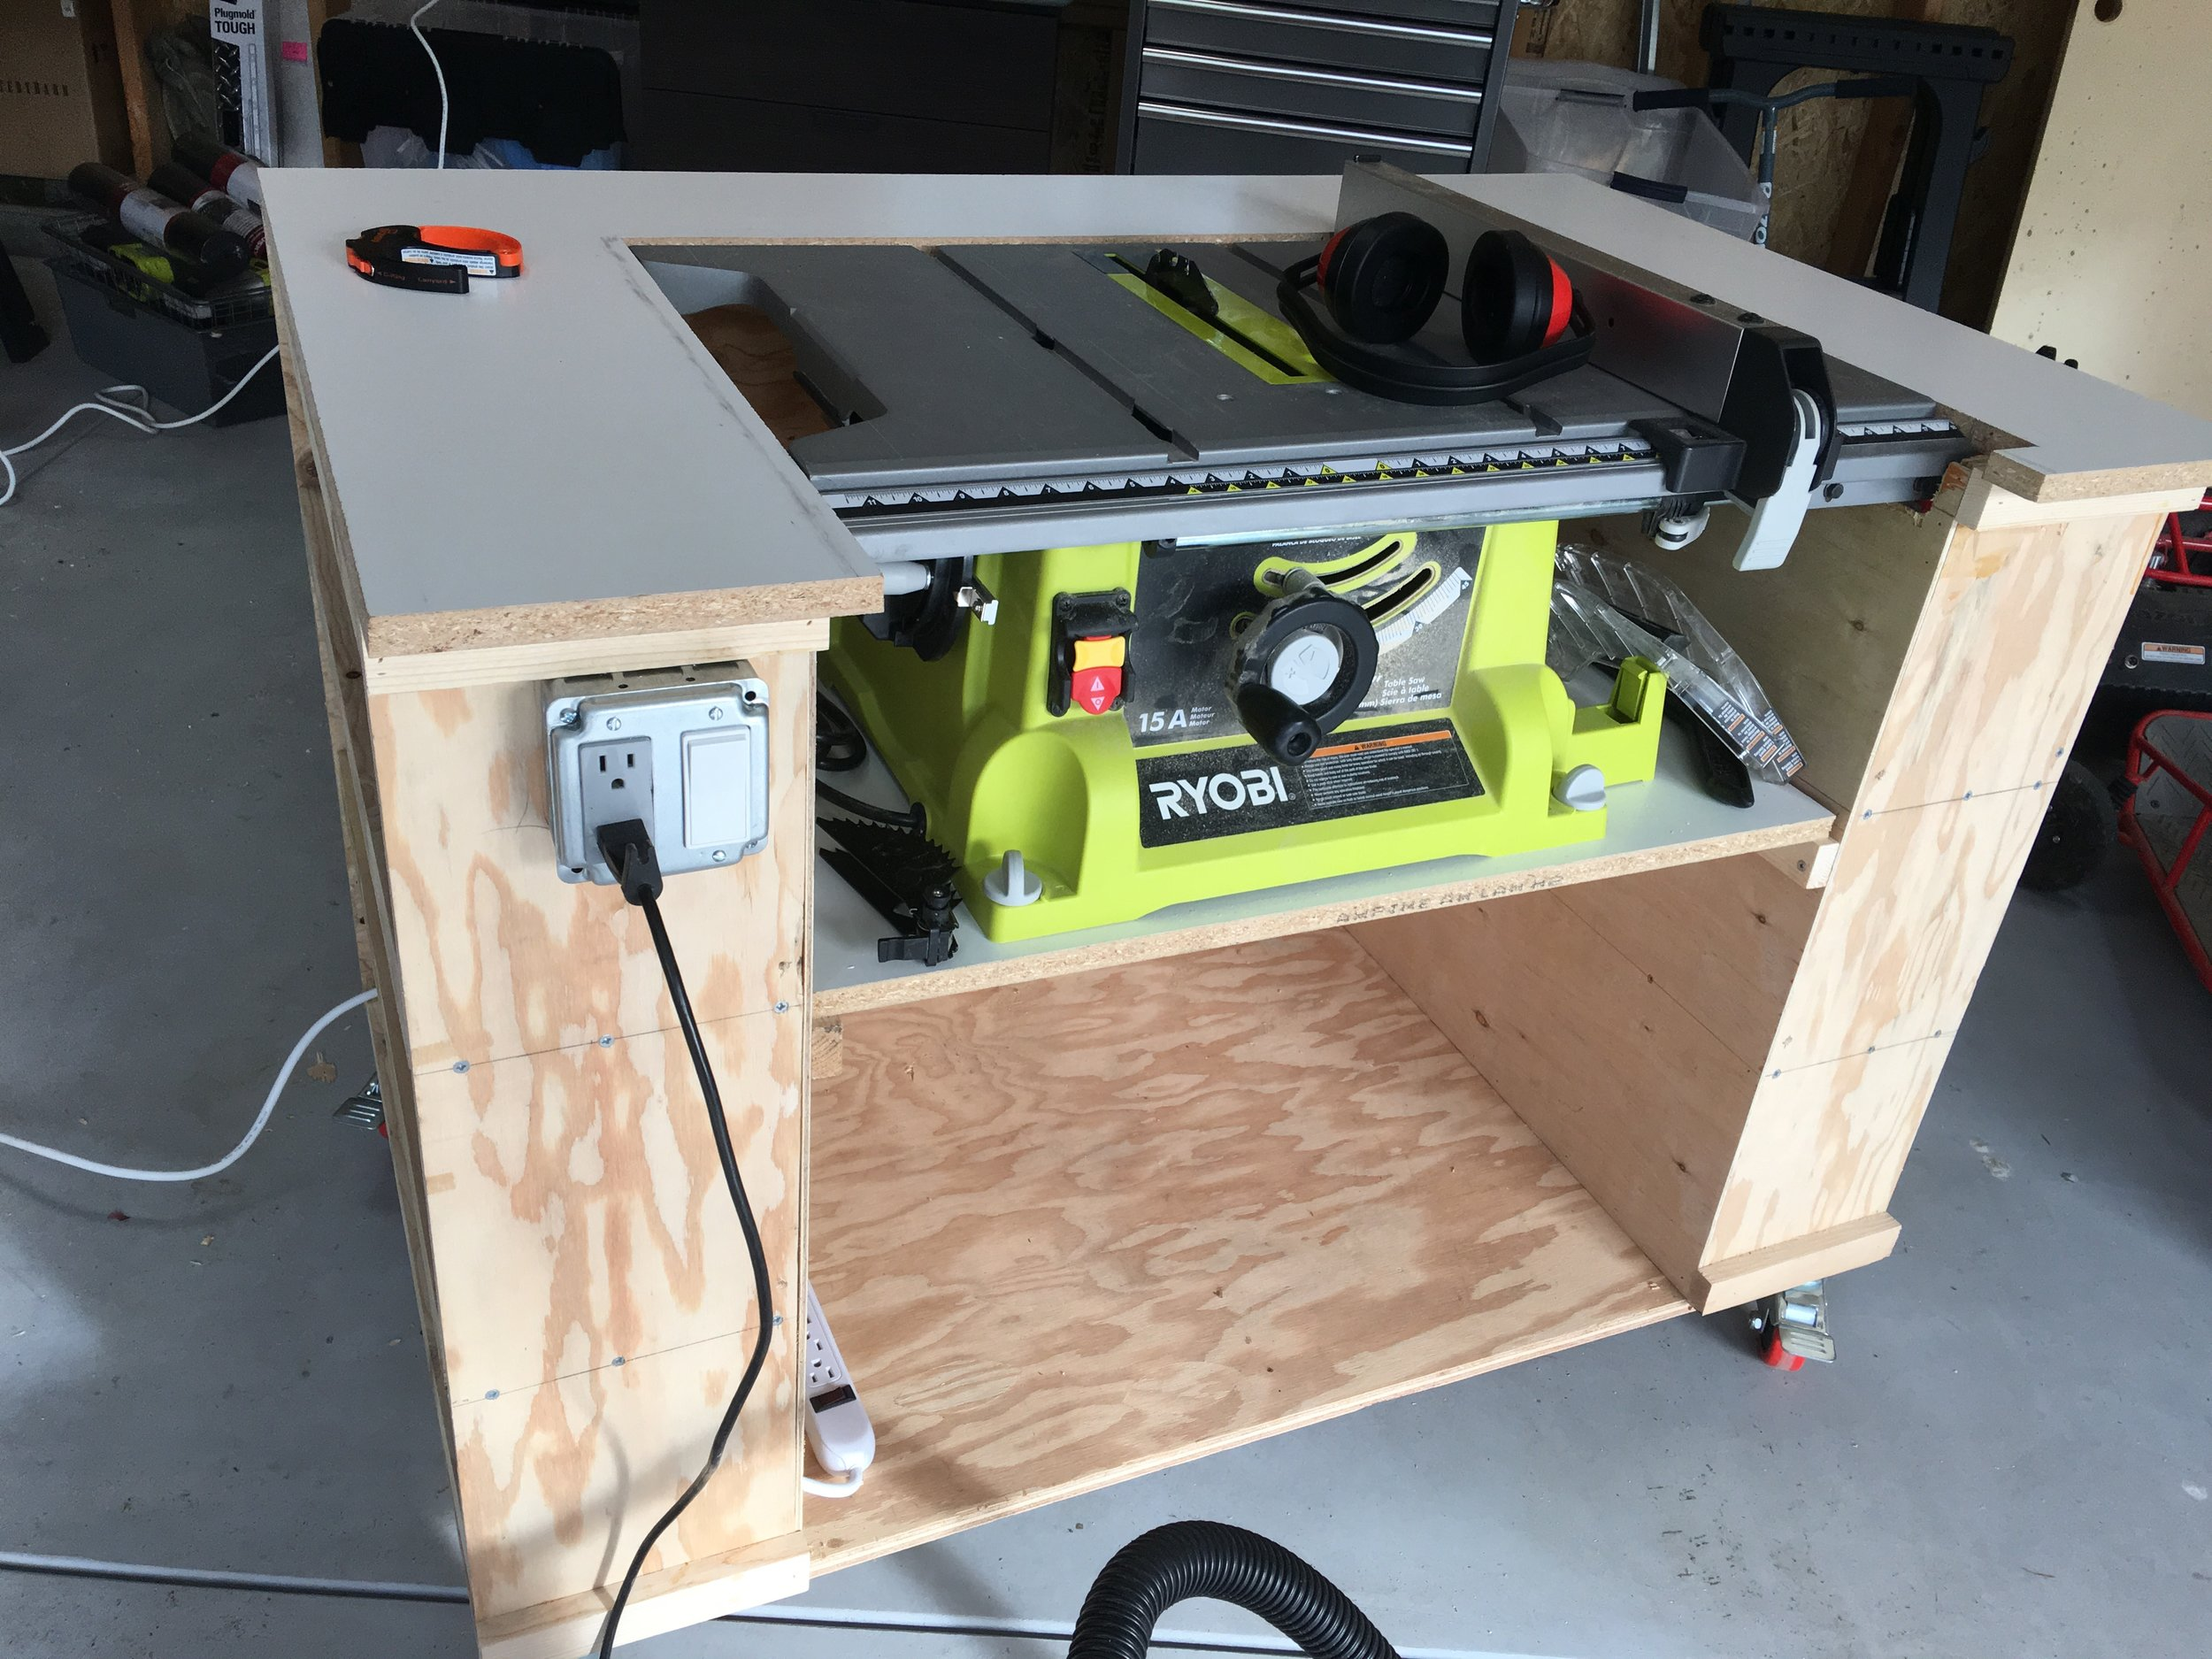 Added switch and outlet to front to control power to the saw.